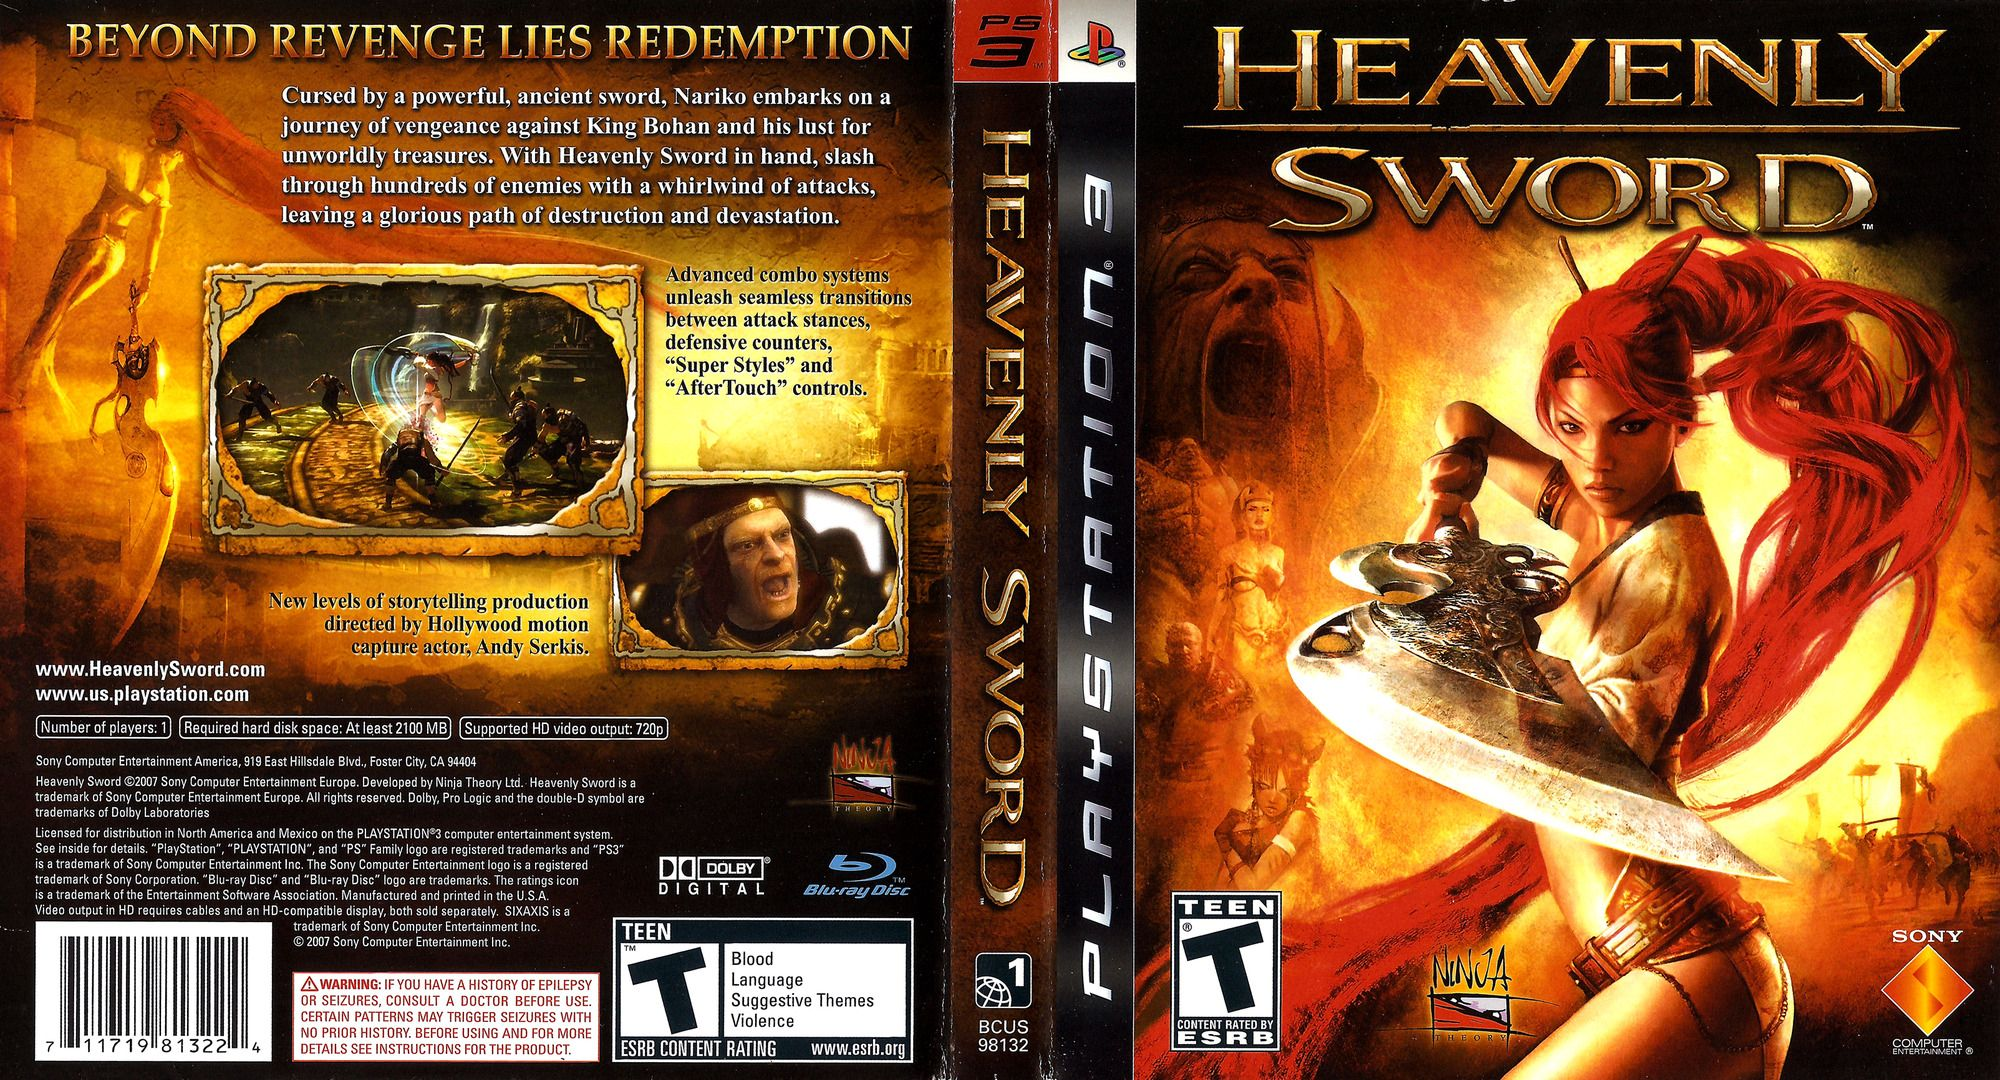 Heavenly Sword This Game Had A Great Story But I Had A Lot Of